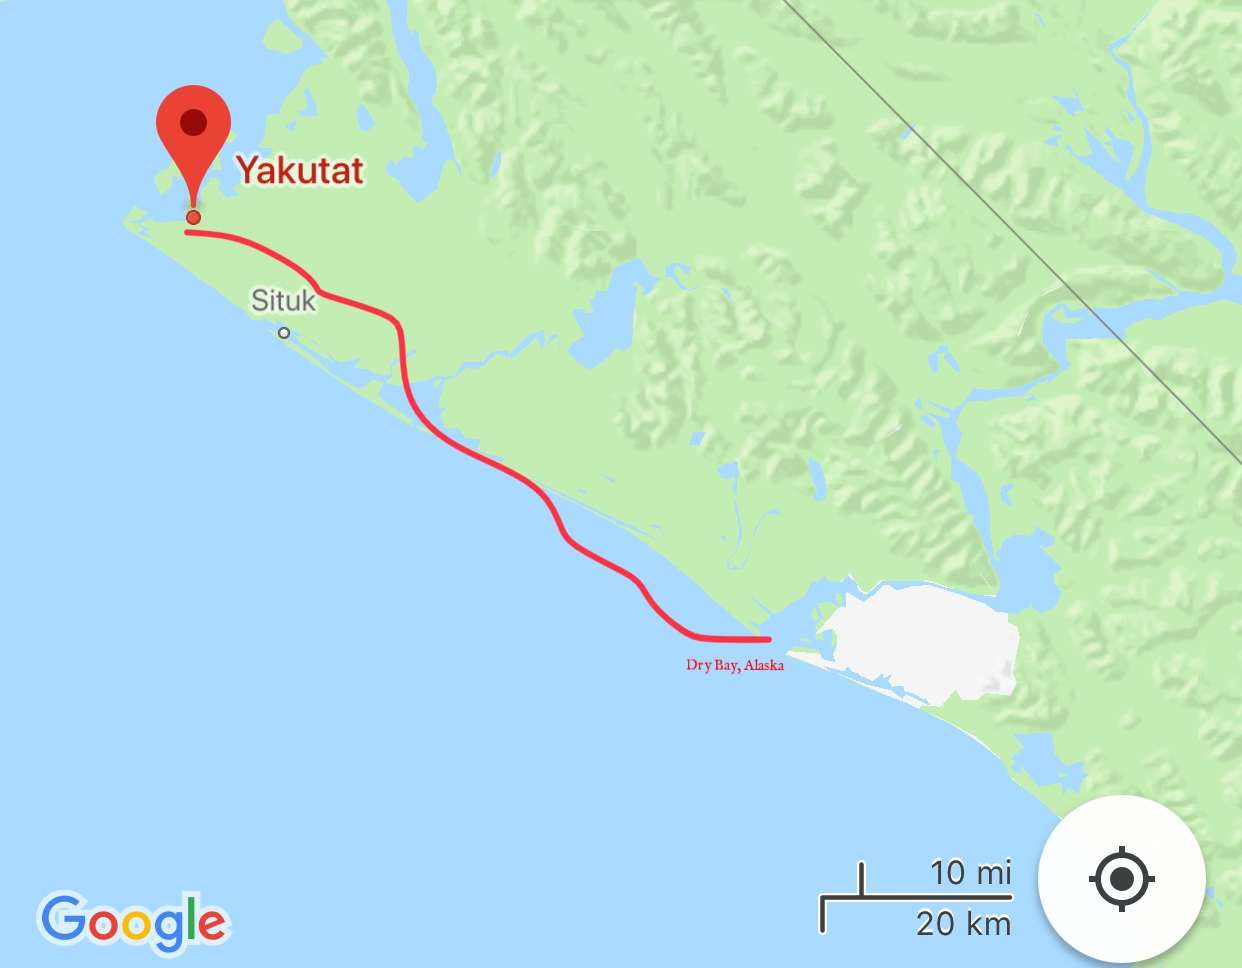 The route we took along the Alaskan coast so that we could meet up with our Air North plane.